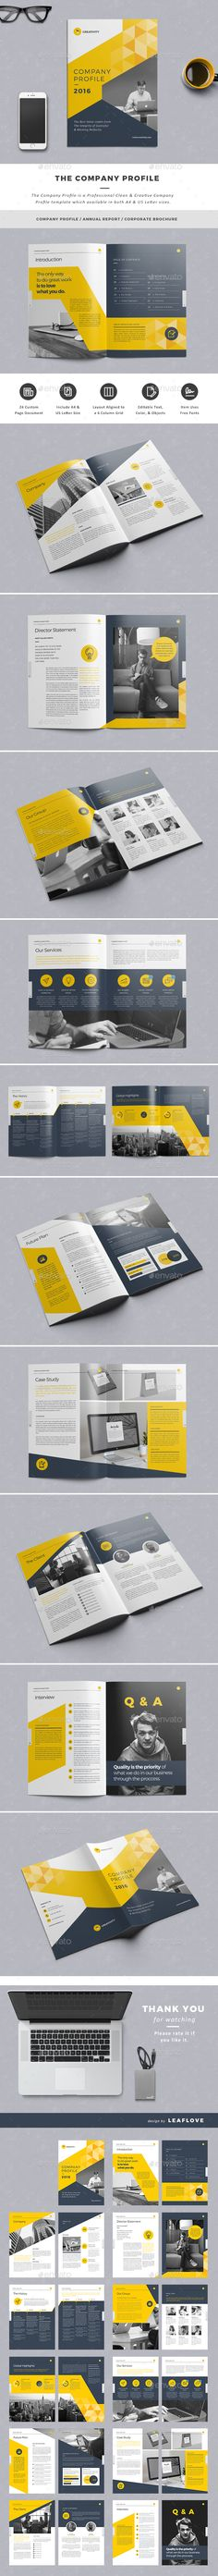 The Company Profile - Corporate Brochures More                                                                                                                                                                                 More